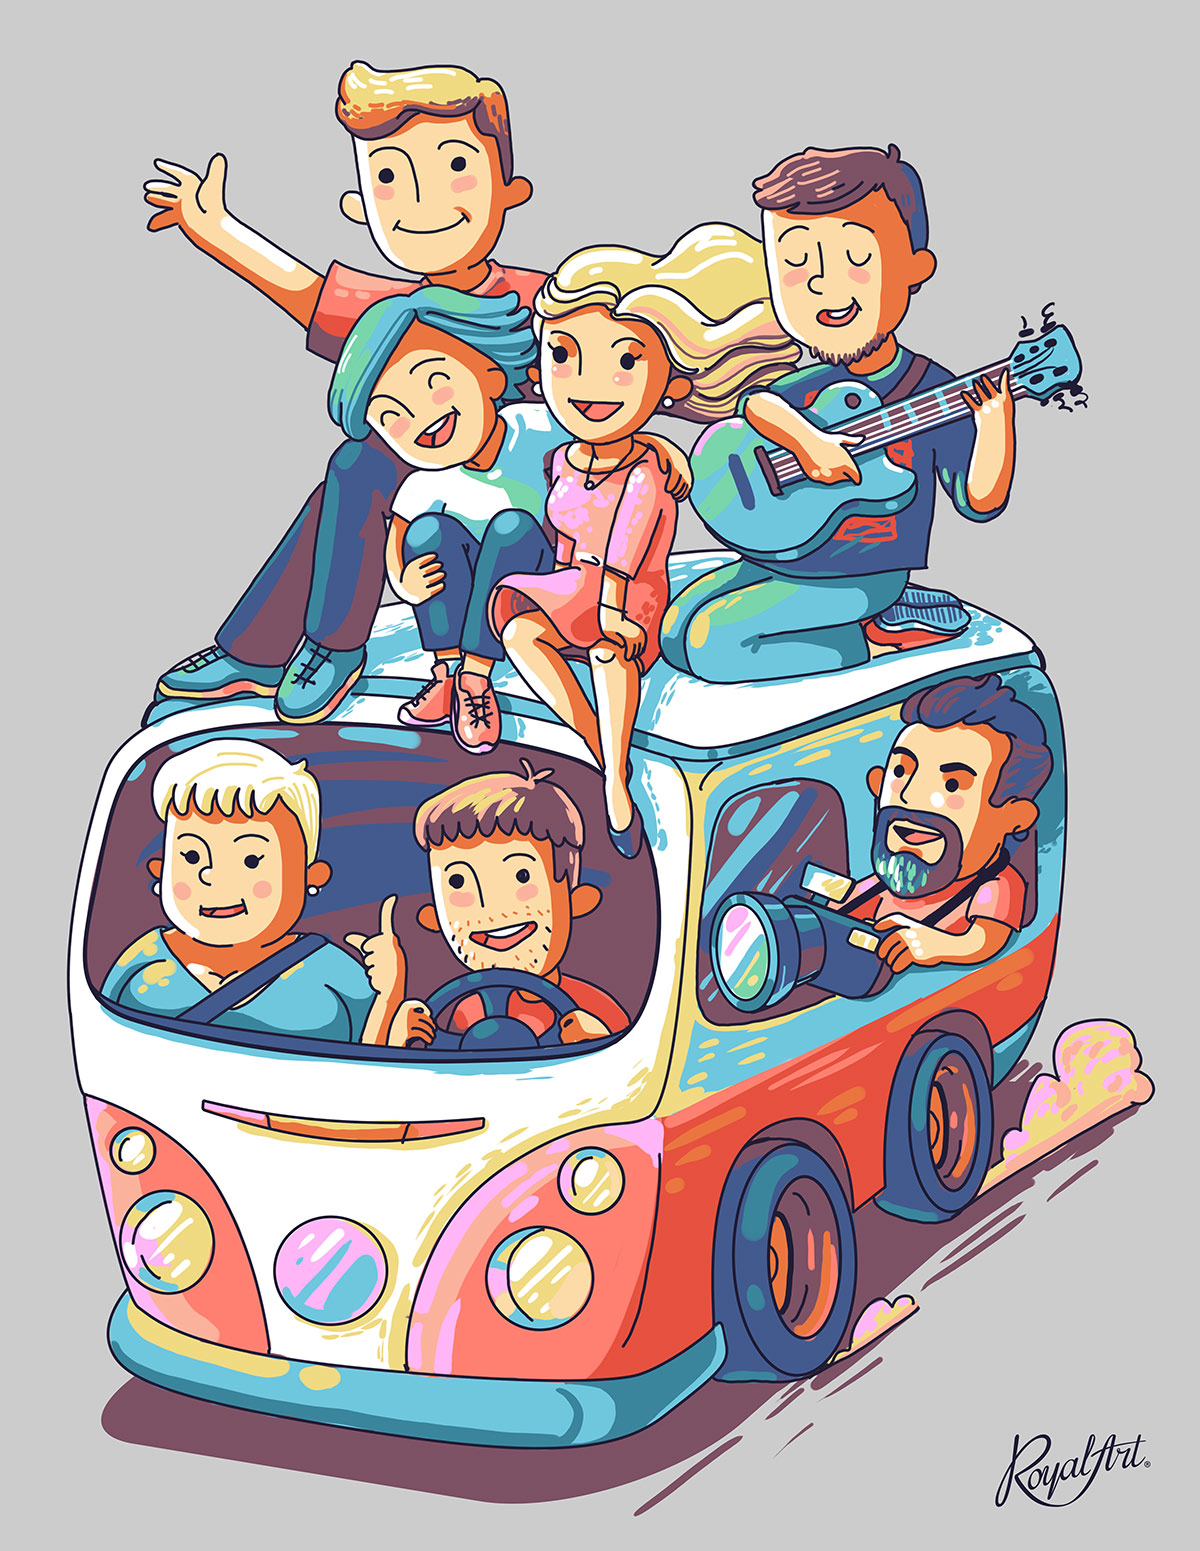 A fun illustration of the creative team with a guitar in Volkswagen T1 (VW T1) hipster bus. The Royal Art team.